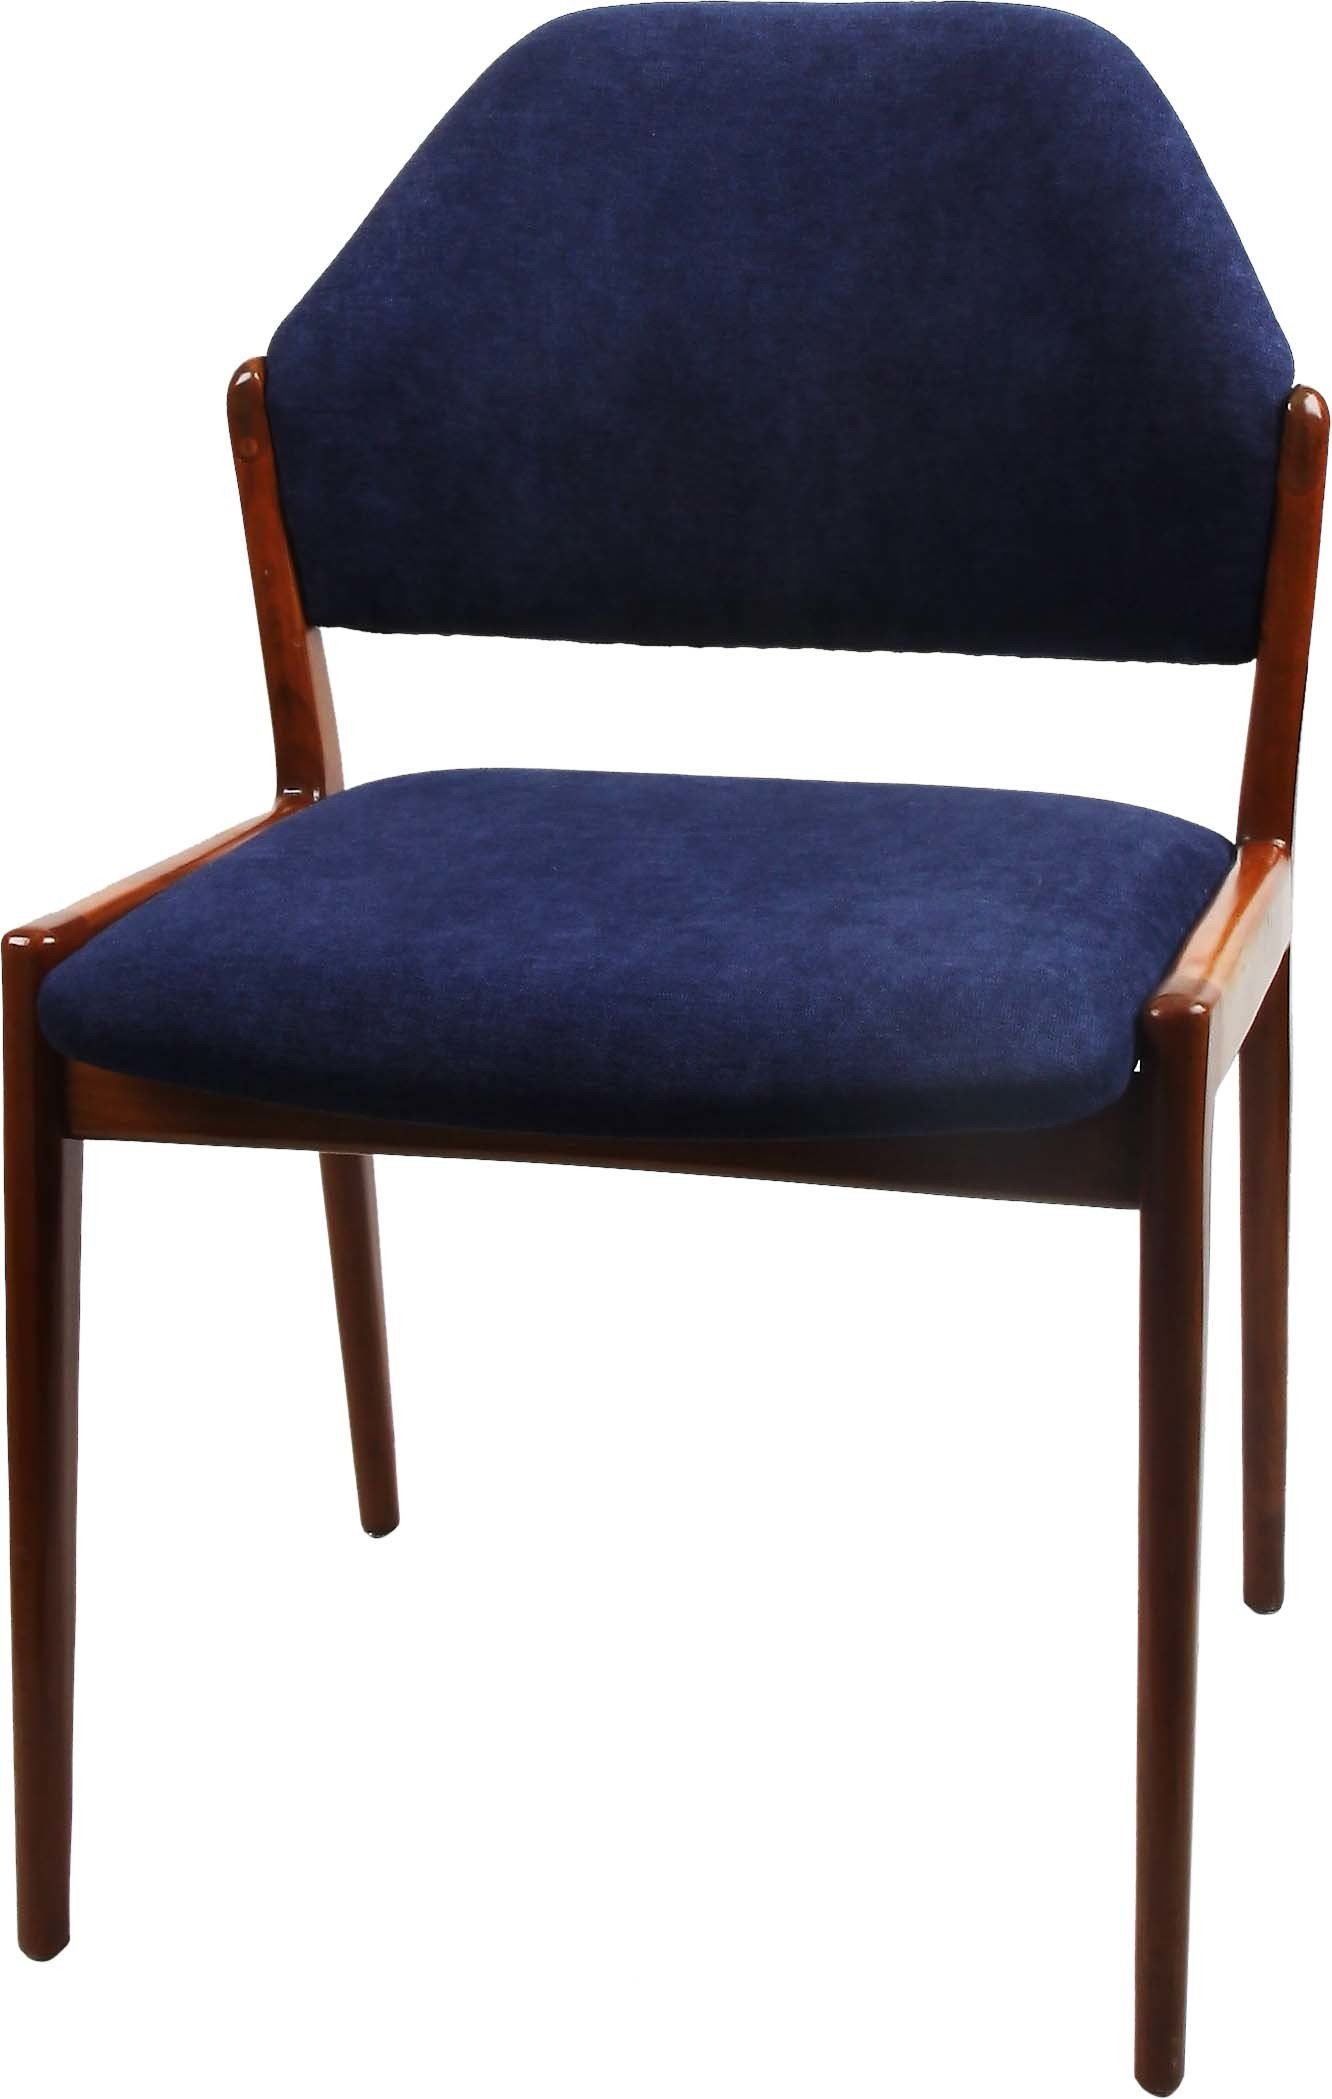 Chair, Sweden, 1960s